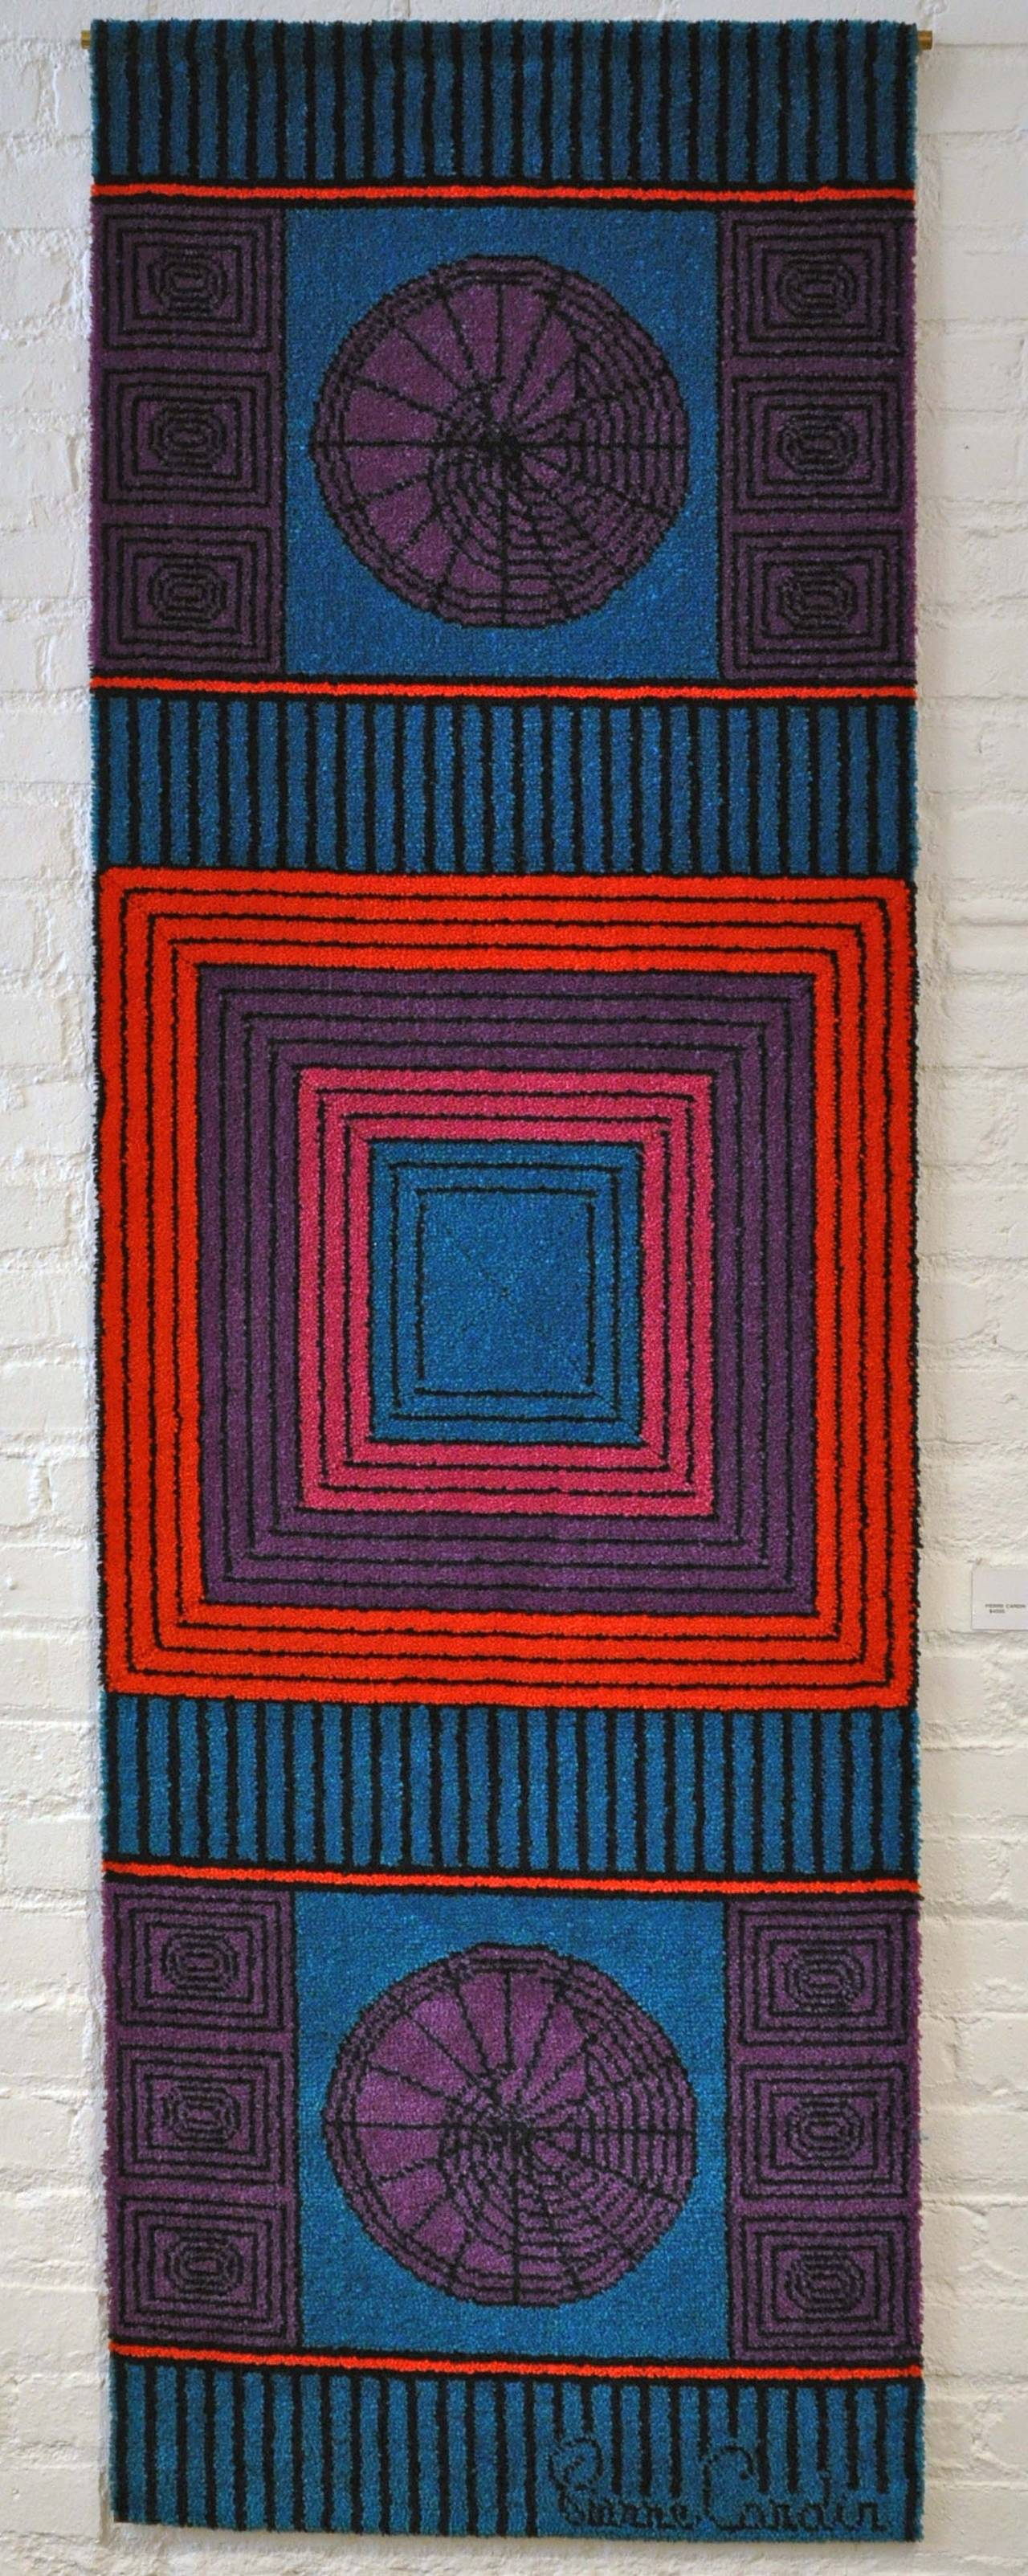 Pierre Cardin, Signed Wool Tapestry 3